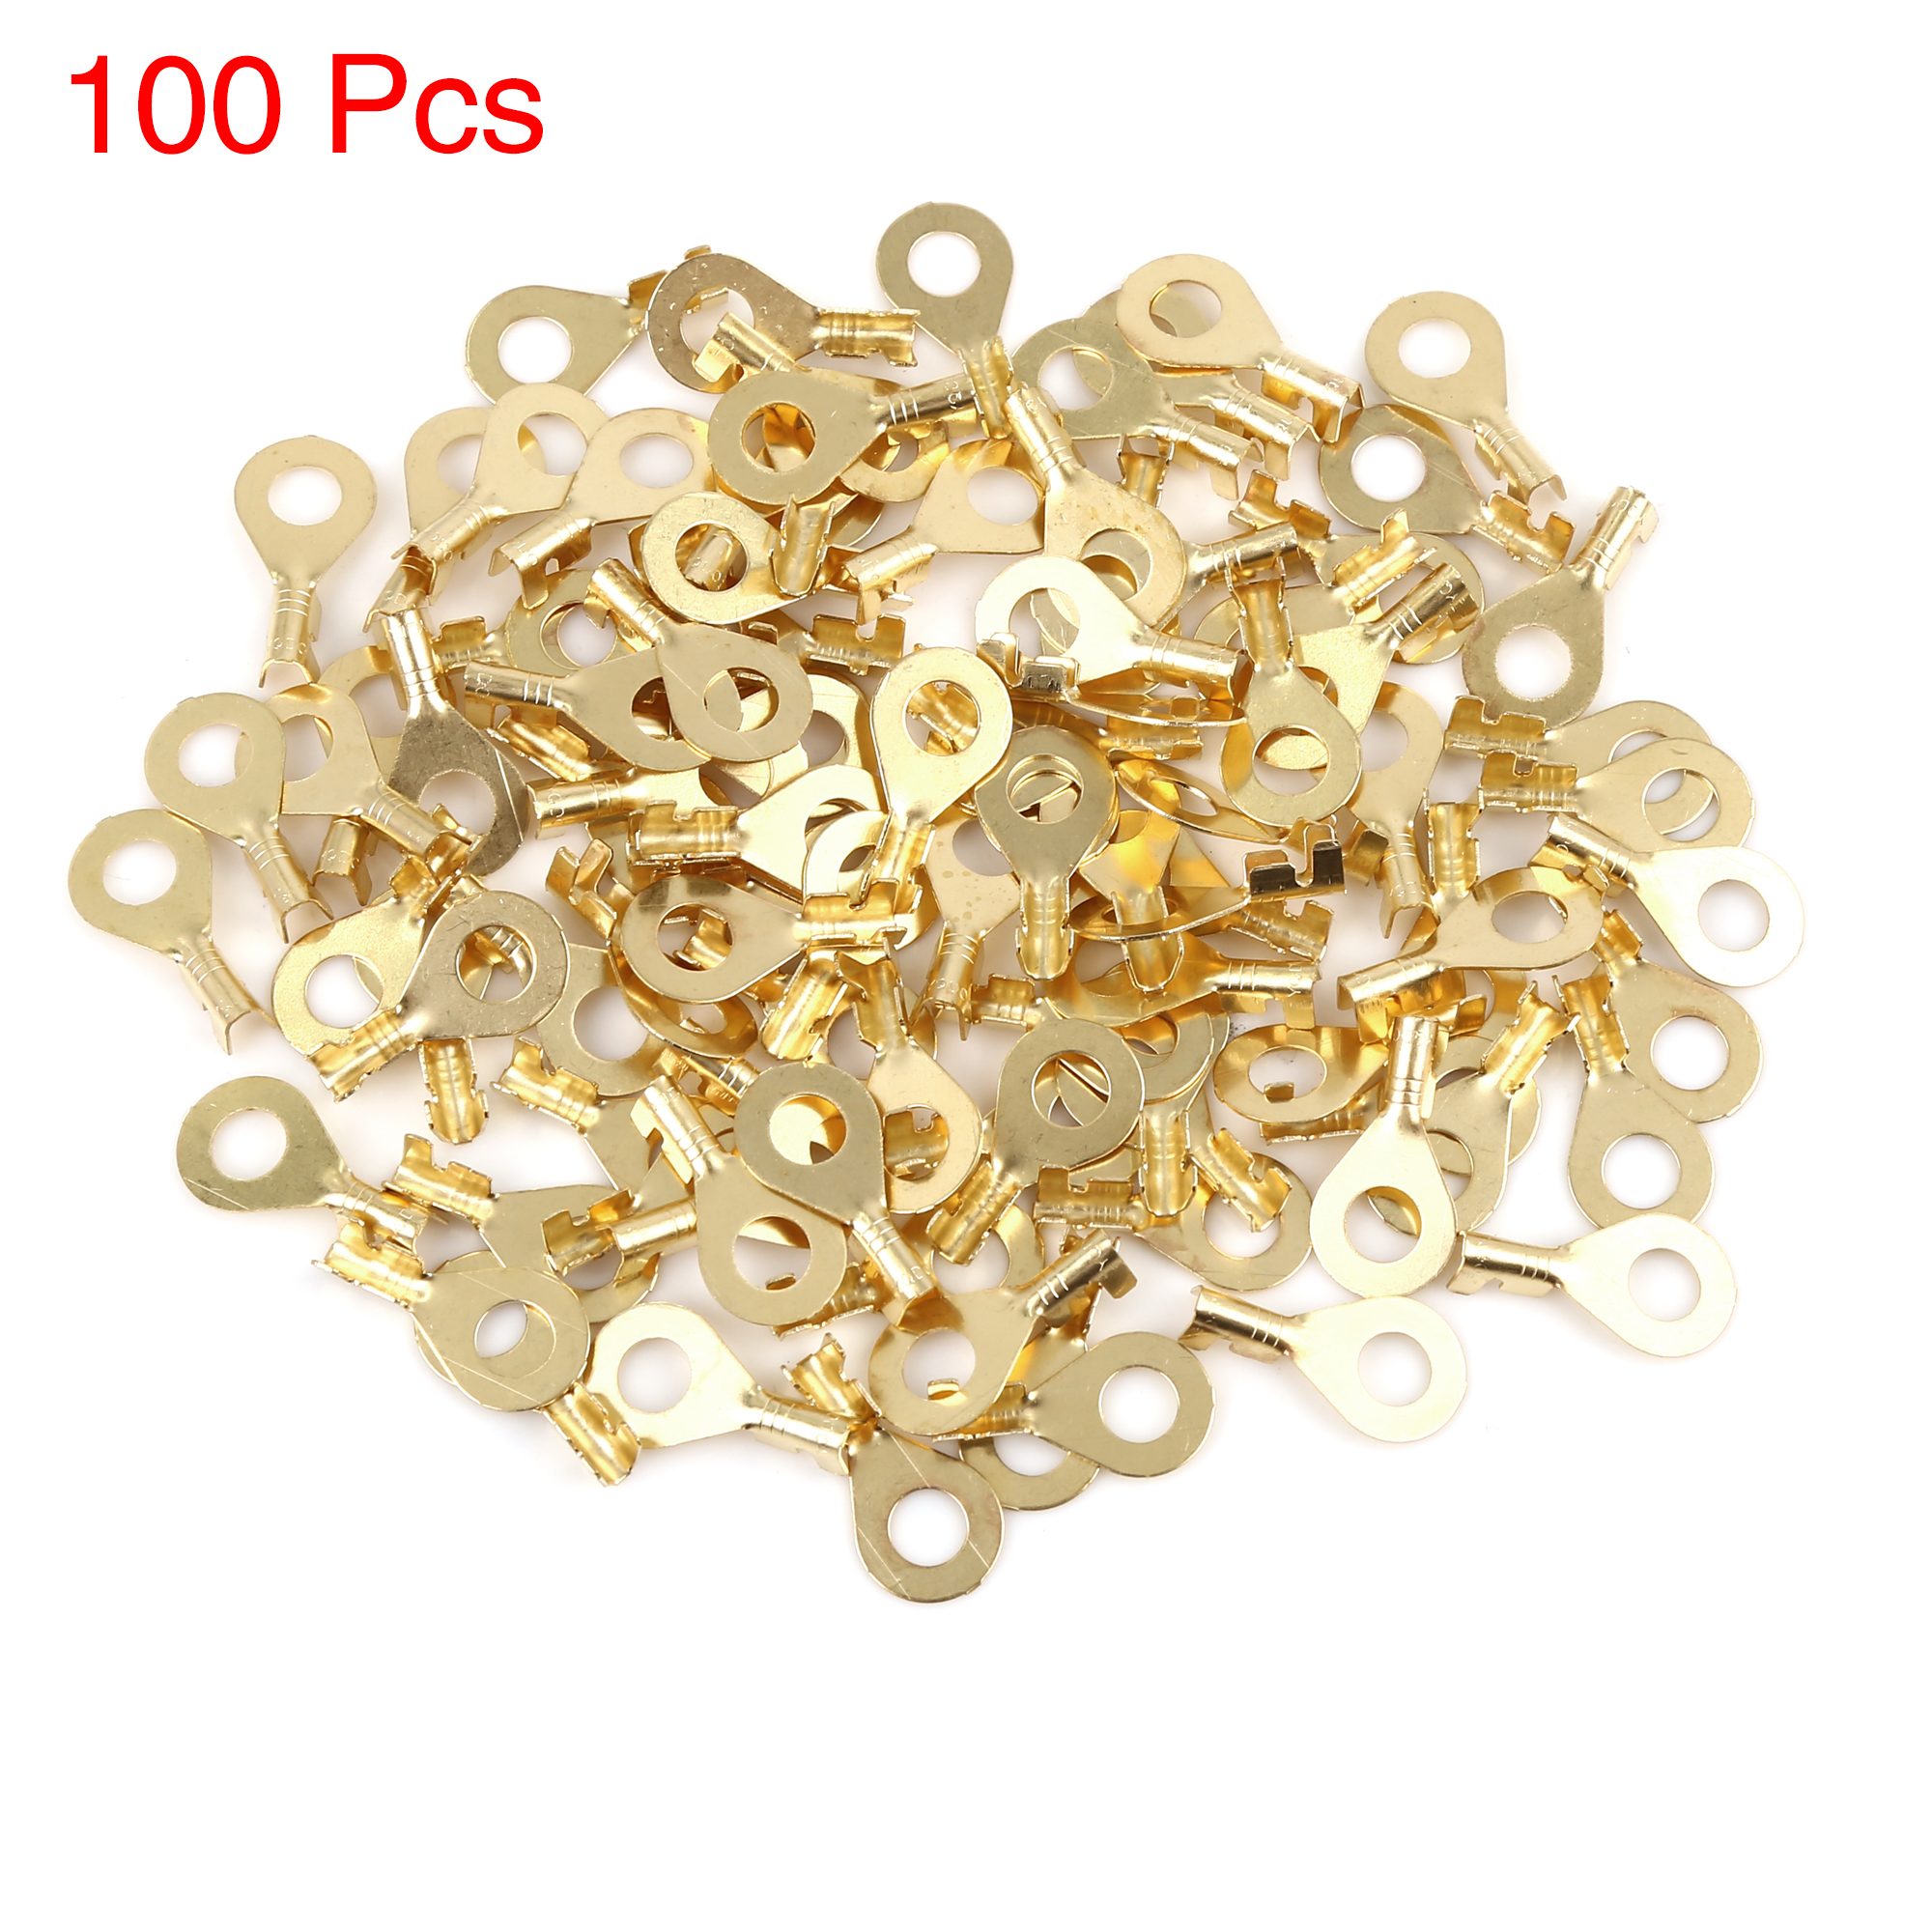 100pcs M6.2 Electric Wire Crimp Ring Lug Terminal Brass Connector 23.5 x 12mm